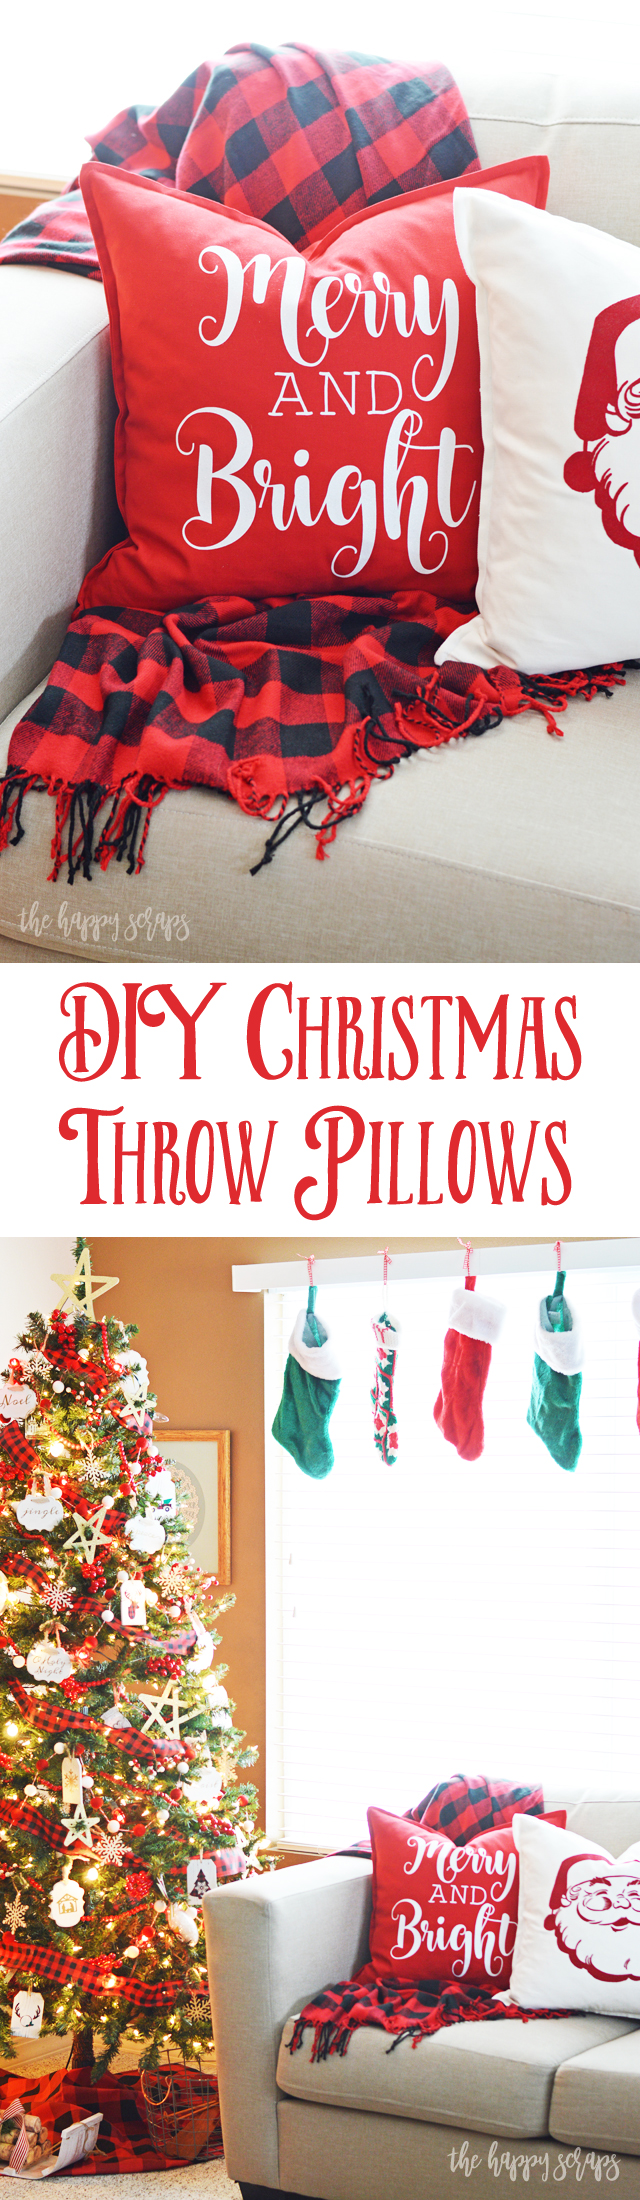 These DIY Christmas Throw Pillows are a quick and easy project that will have your home ready for Christmas in not time! Get the tutorial on the blog.